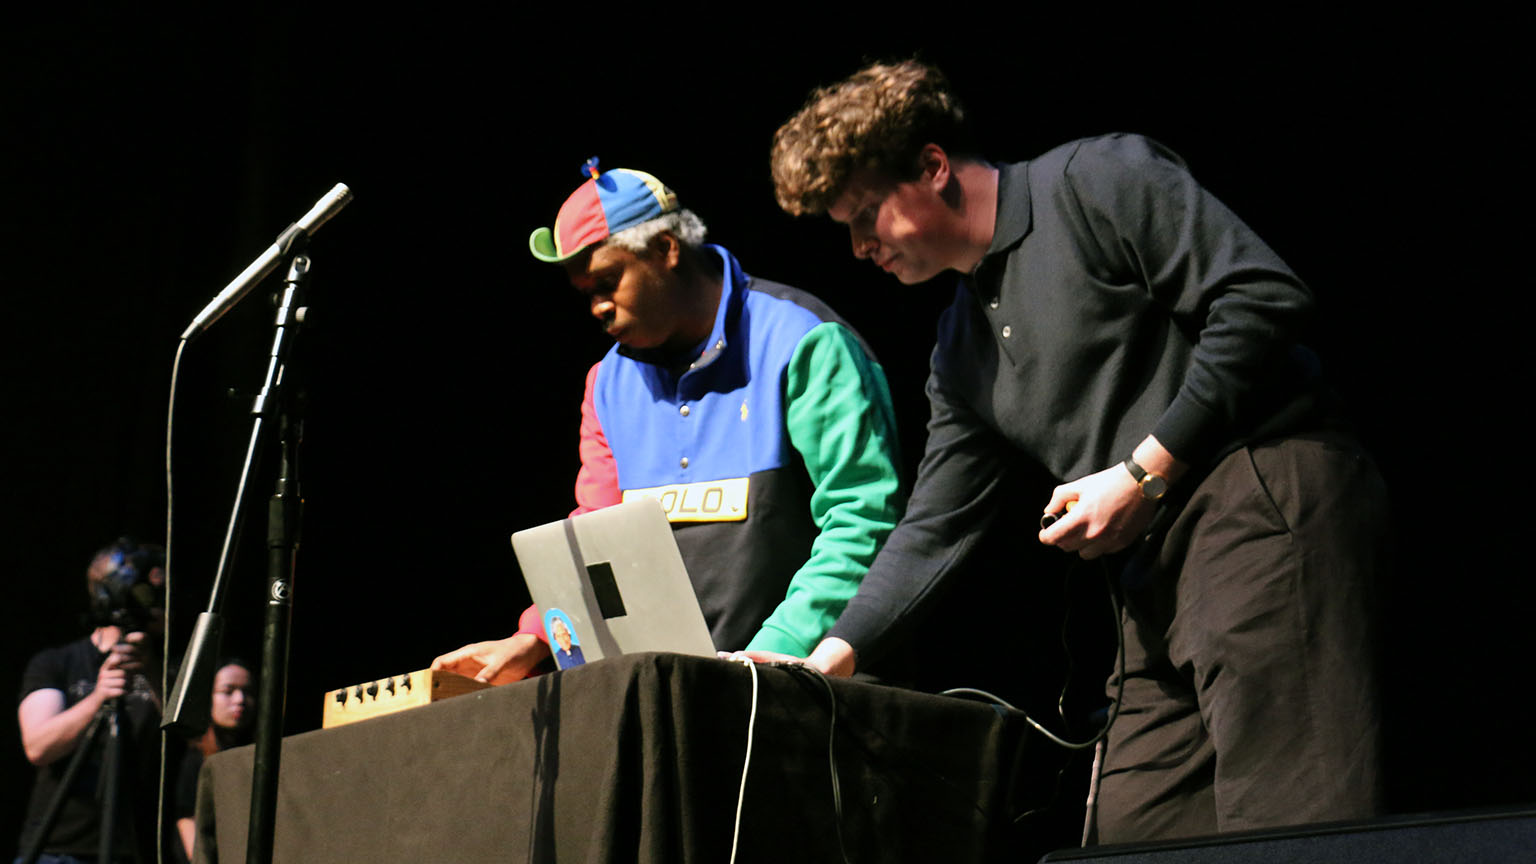 Two men playing electronic instruments on stage, adjusting the sound with a laptop in front of them.